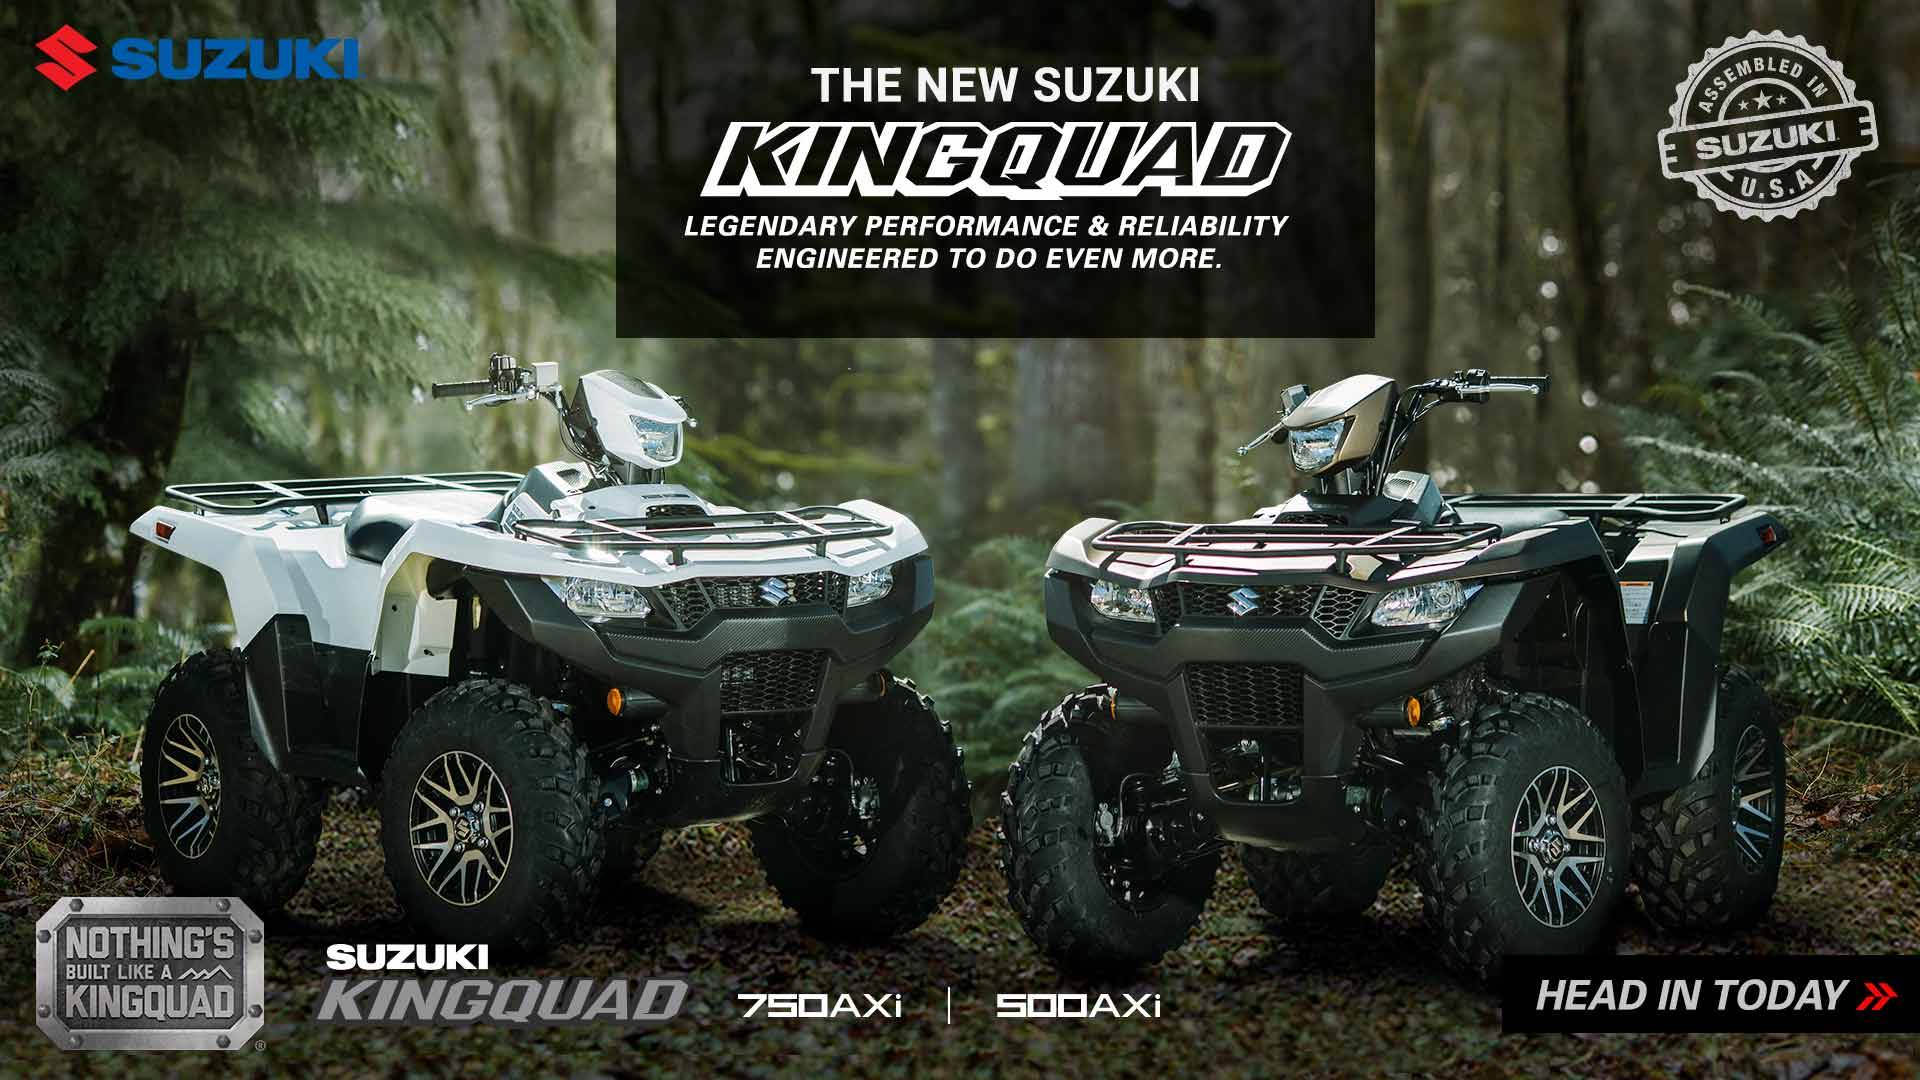 Suzuki - Fall SuzukiFest 2018 - Sport and Utility Sport ATVs